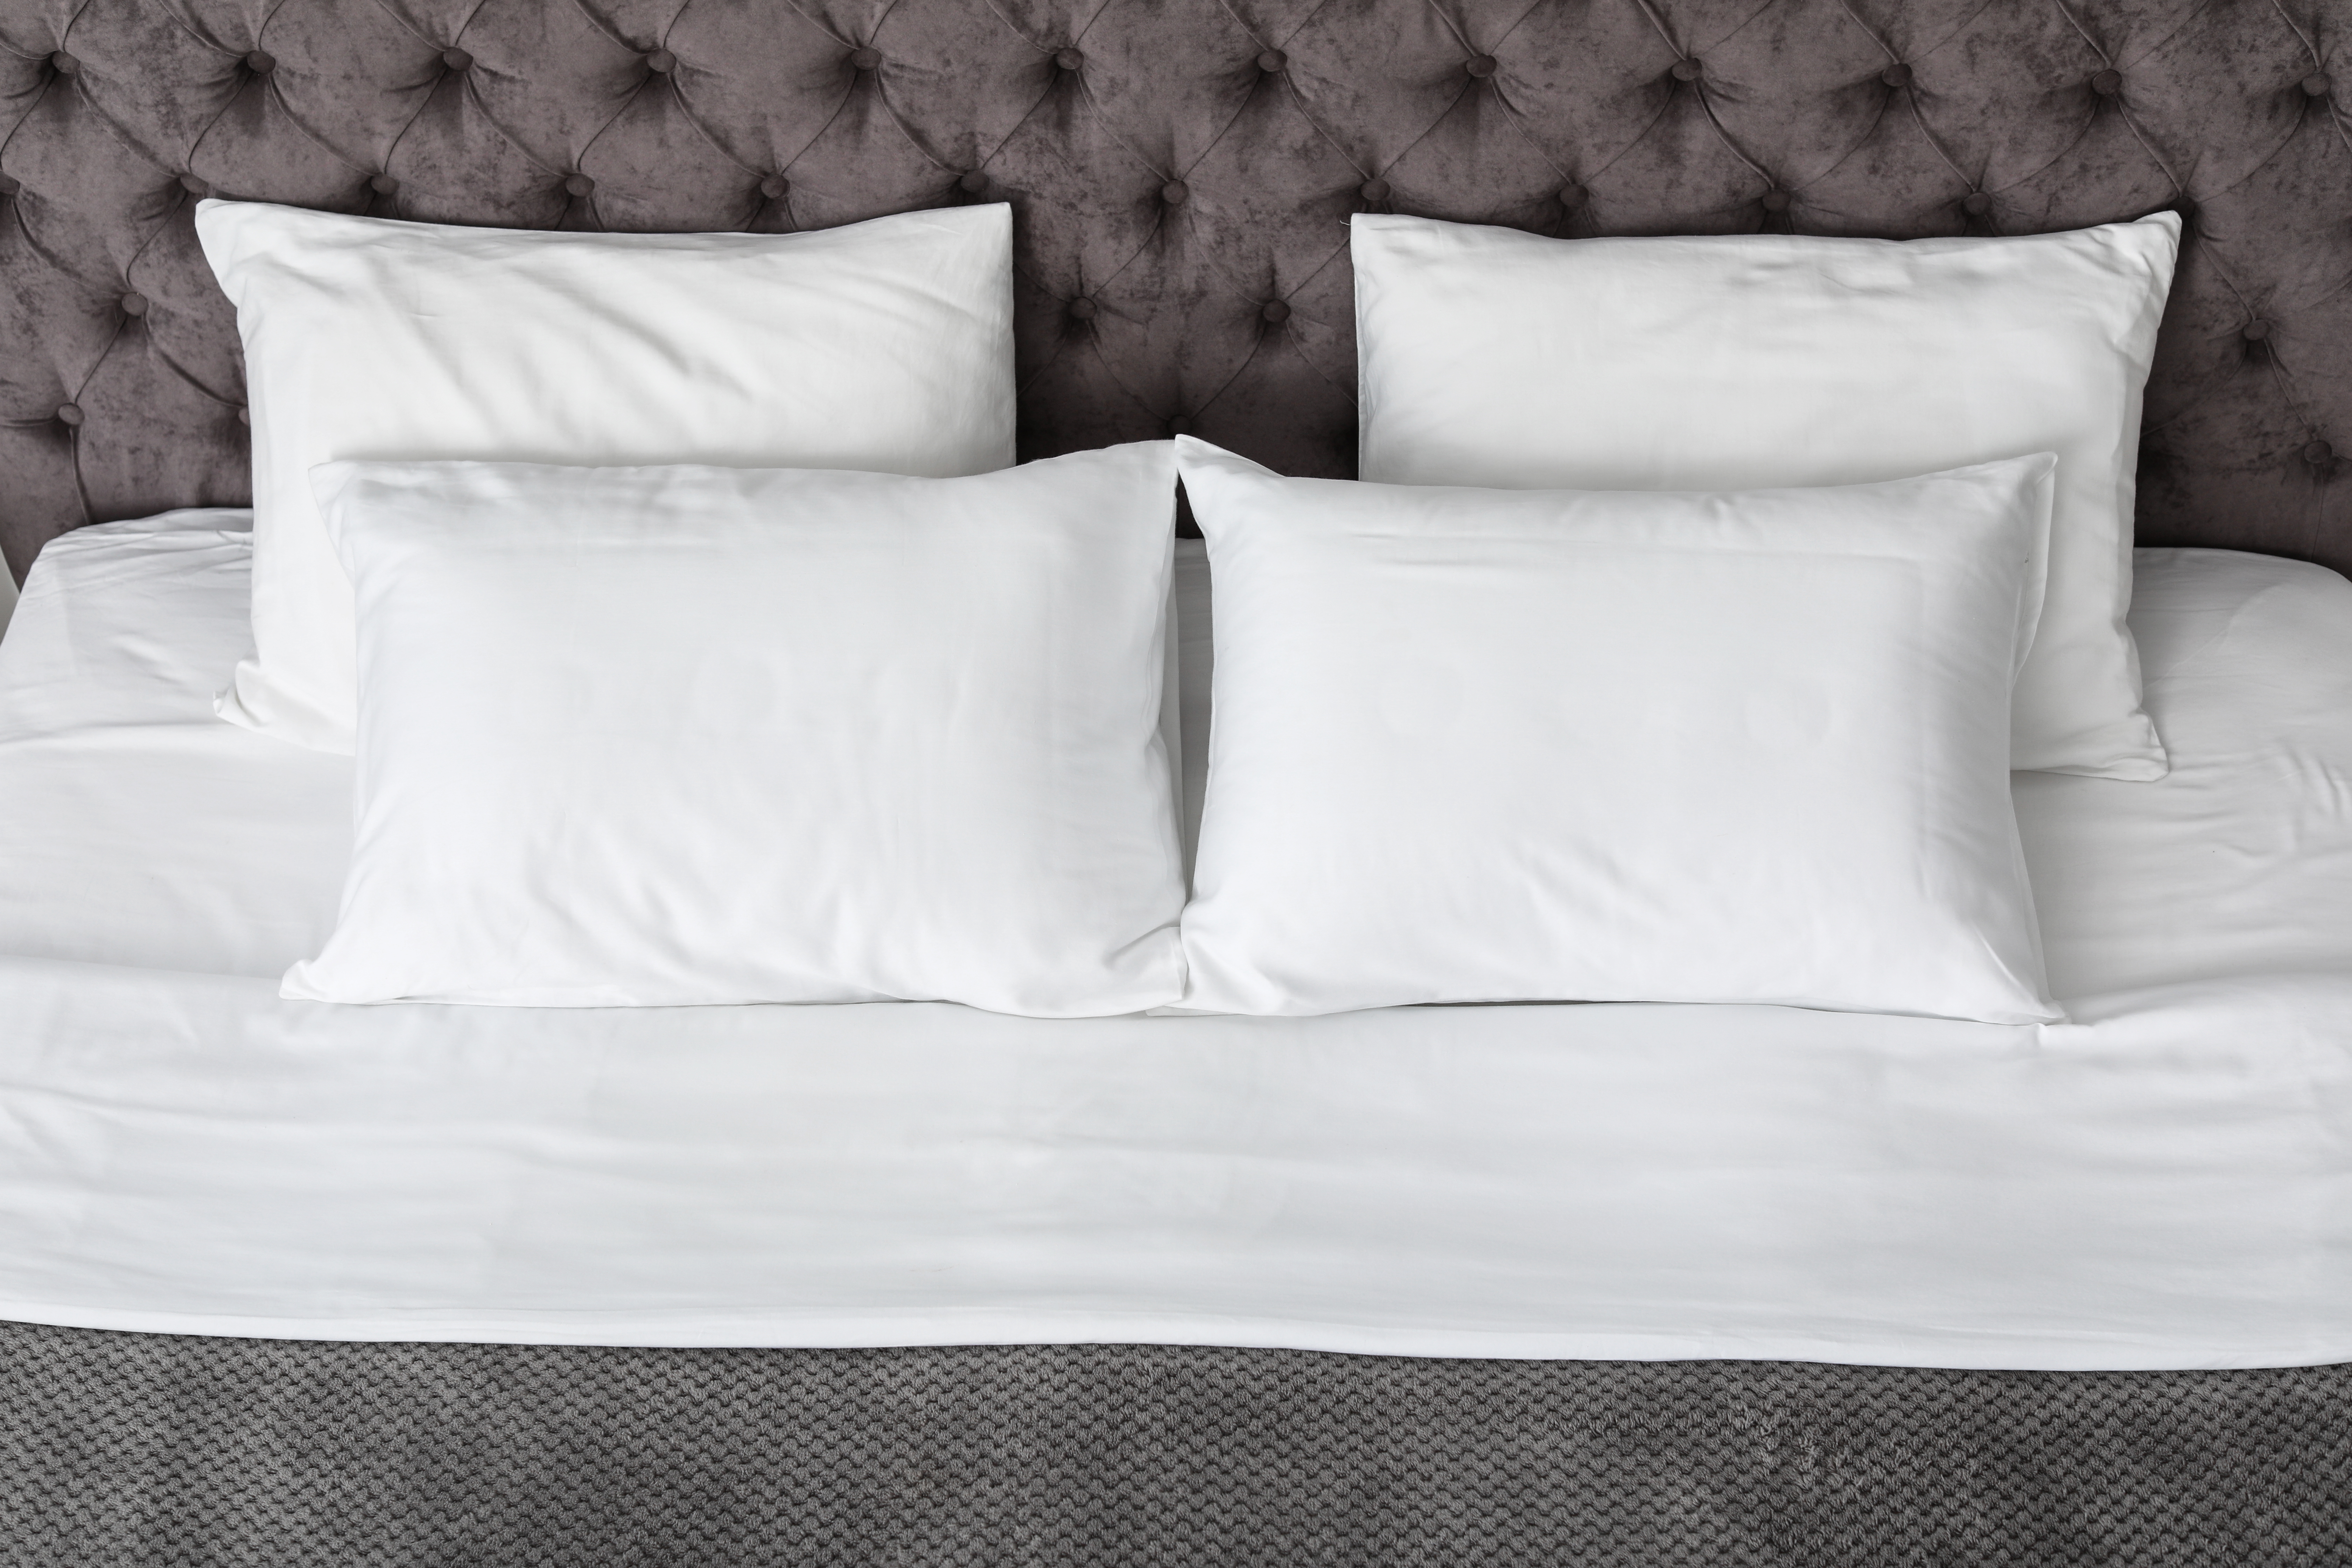 4 pillows on a bed